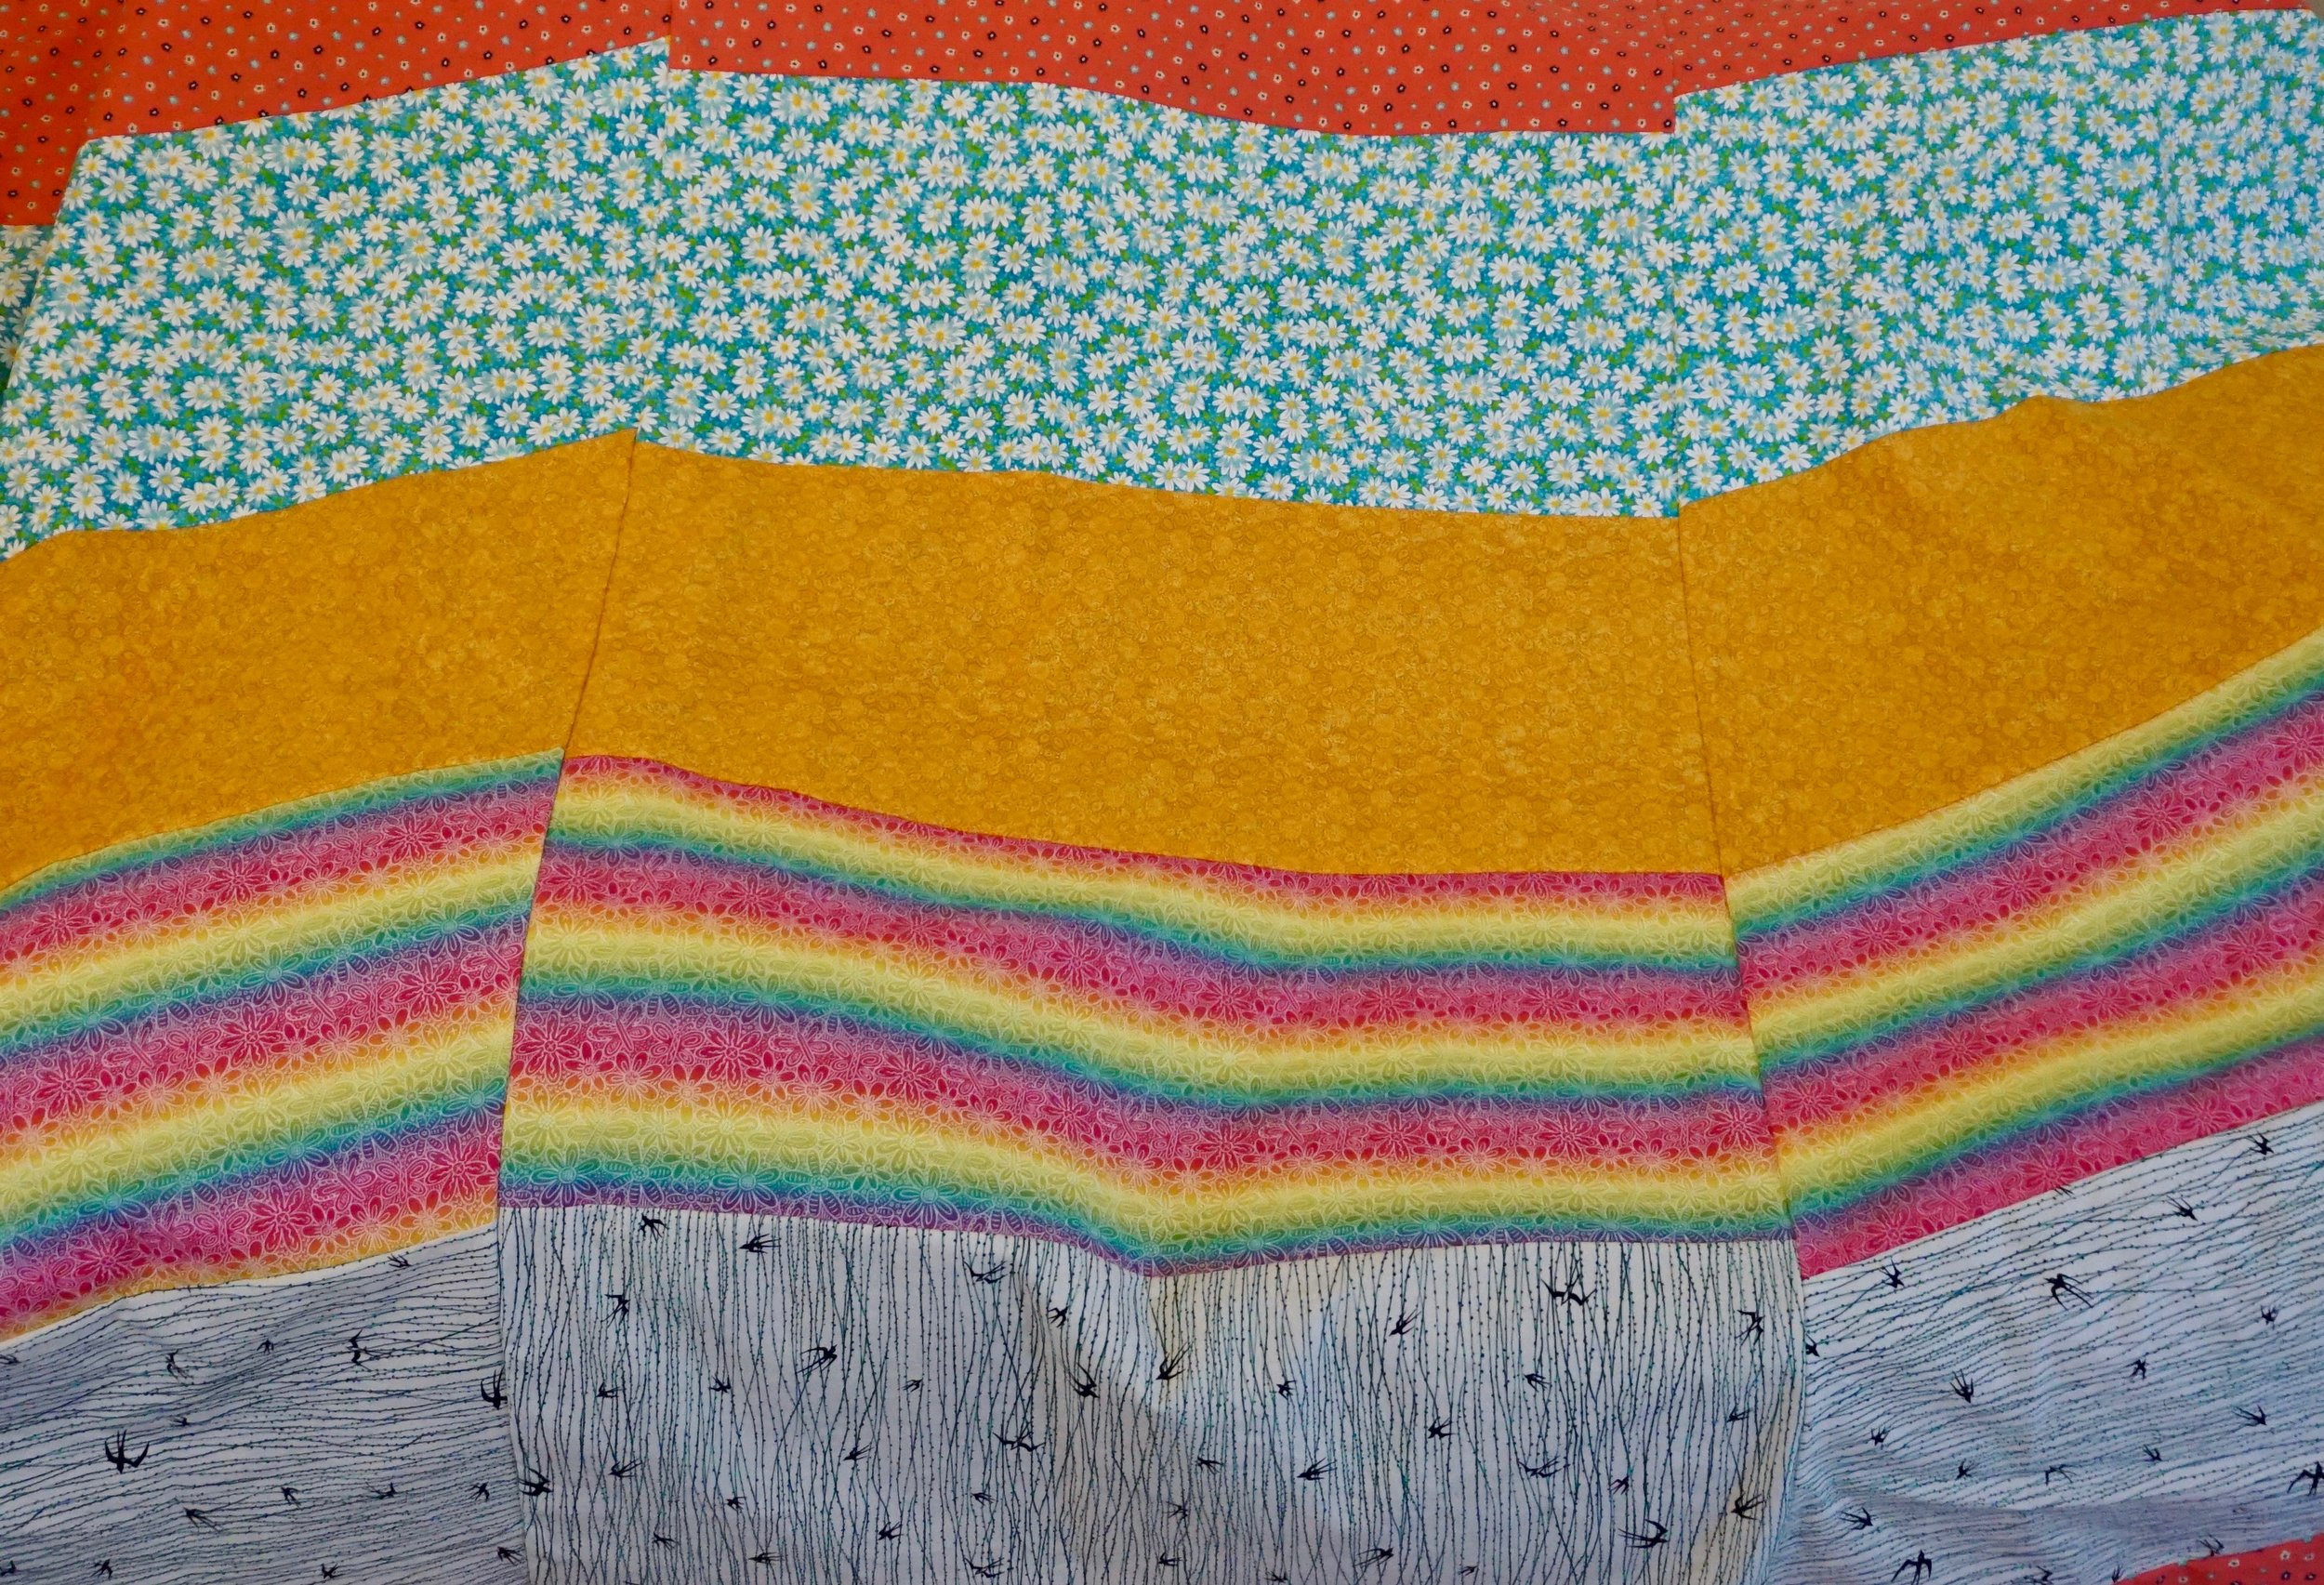 Rainbow Contemporary Quilt by Kat Sturges